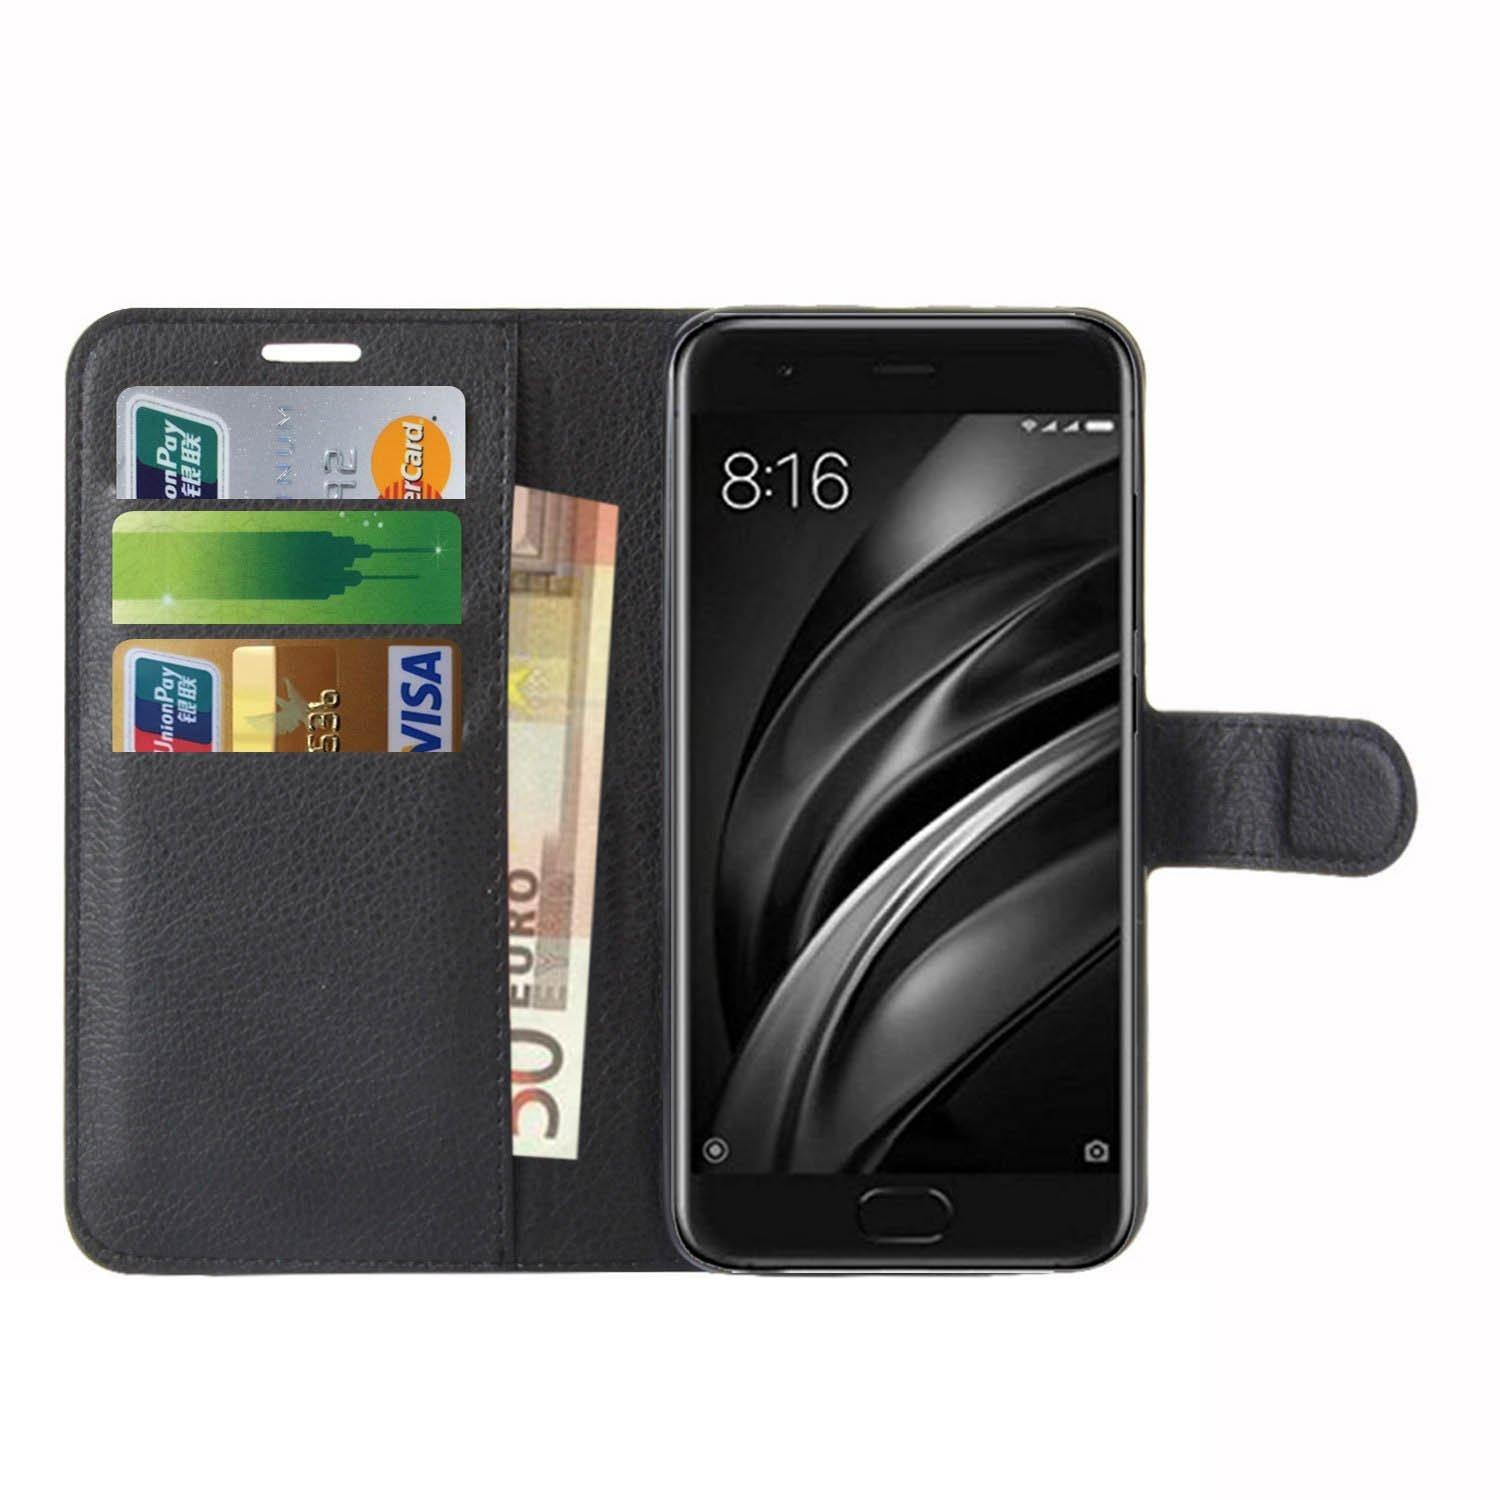 Xiaomi Mi 6 Case, Anzhao Flip Cover Wallet with Card Slot Protective Leather Case for Xiaomi Mi 6 (Black)